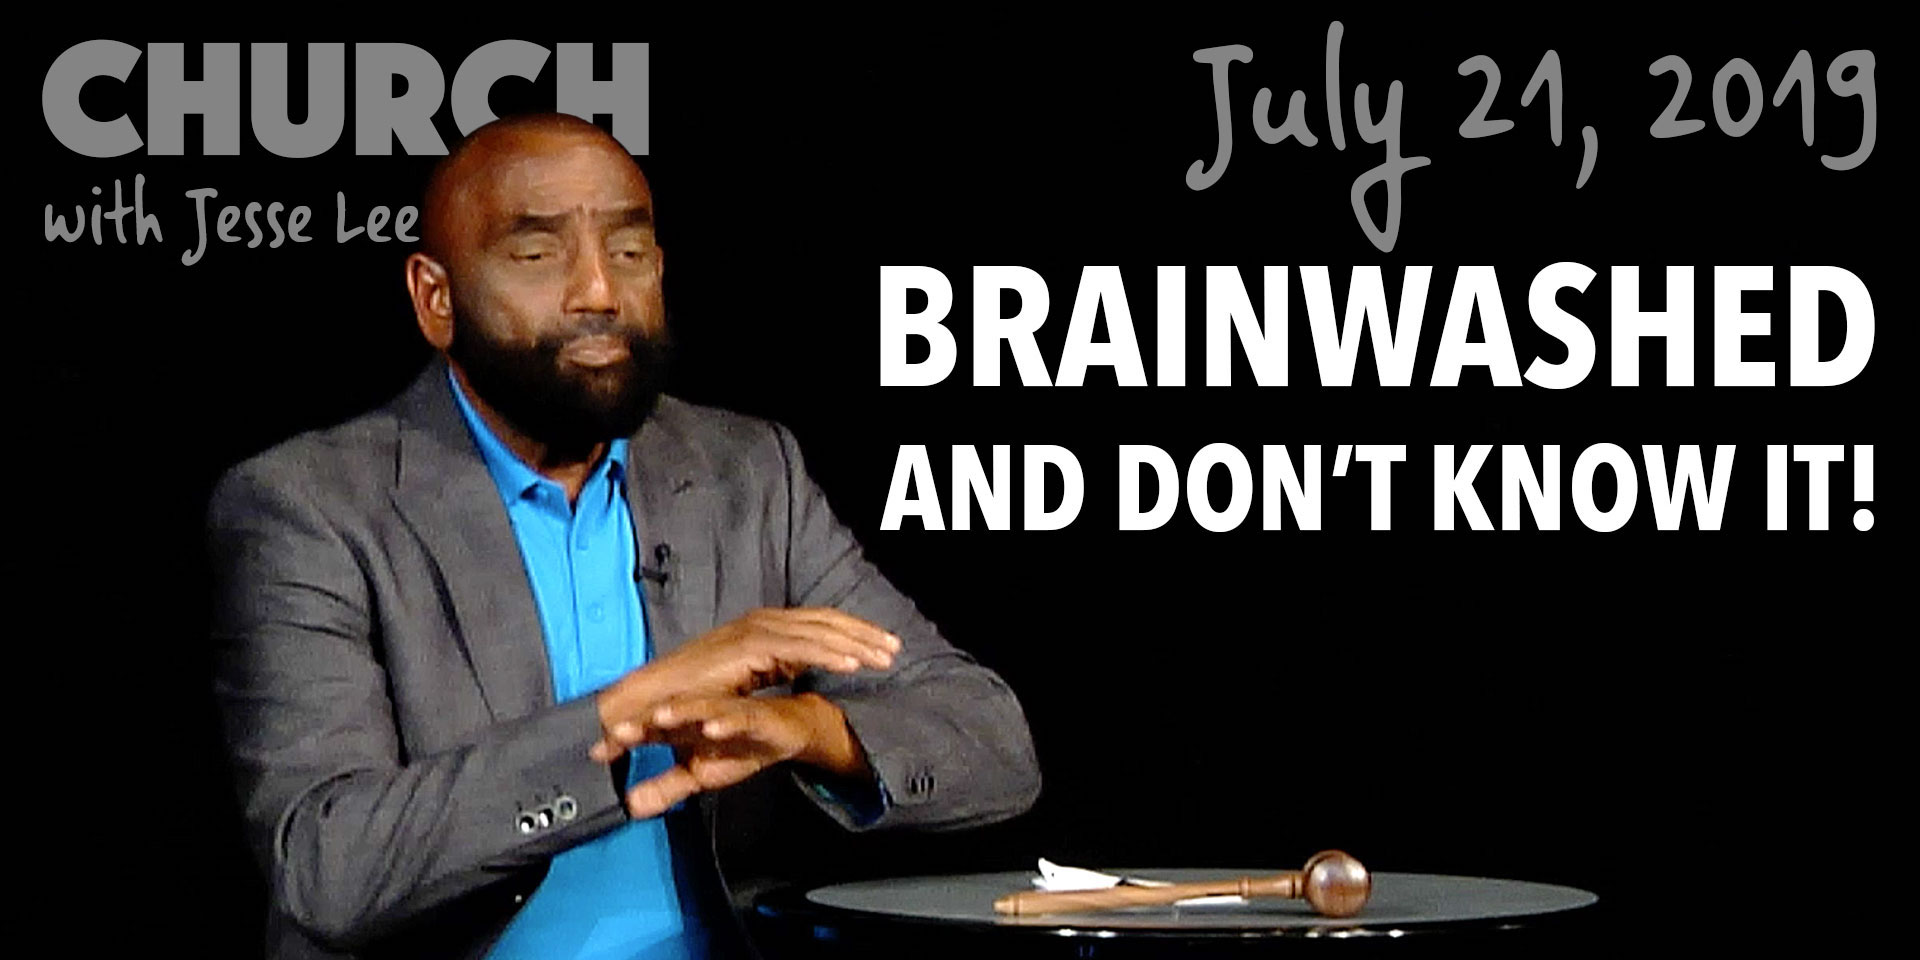 You Could Be Brainwashed and Not Know It! (Church July 21, 2019)